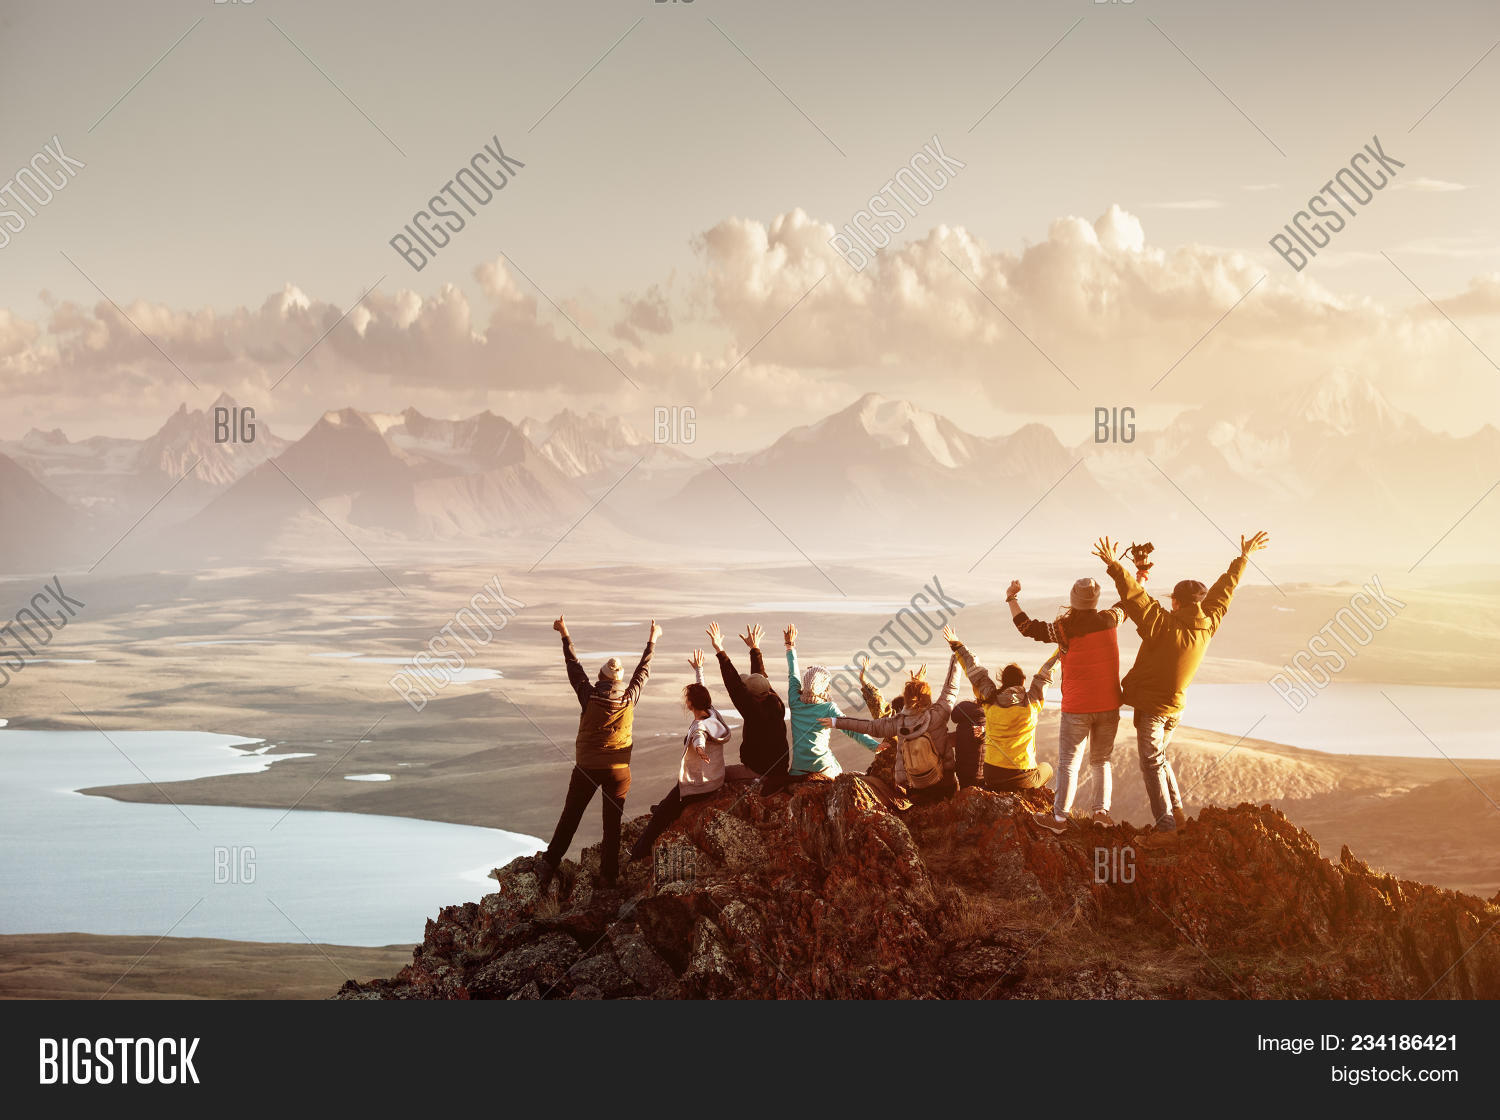 activity,adventure,altai,altay,altitude,backpack,cliff,climber,climbing,clouds,day,endurance,enjoying,extreme,freedom,friends,group,happy,high,hike,hiking,hill,horizon,journey,landscape,leisure,male,man,mountain,nature,peak,people,raised,relaxing,rock,sitting,sport,standing,success,sunset,team,together,top,tourist,travel,trekking,valley,view,woman,young